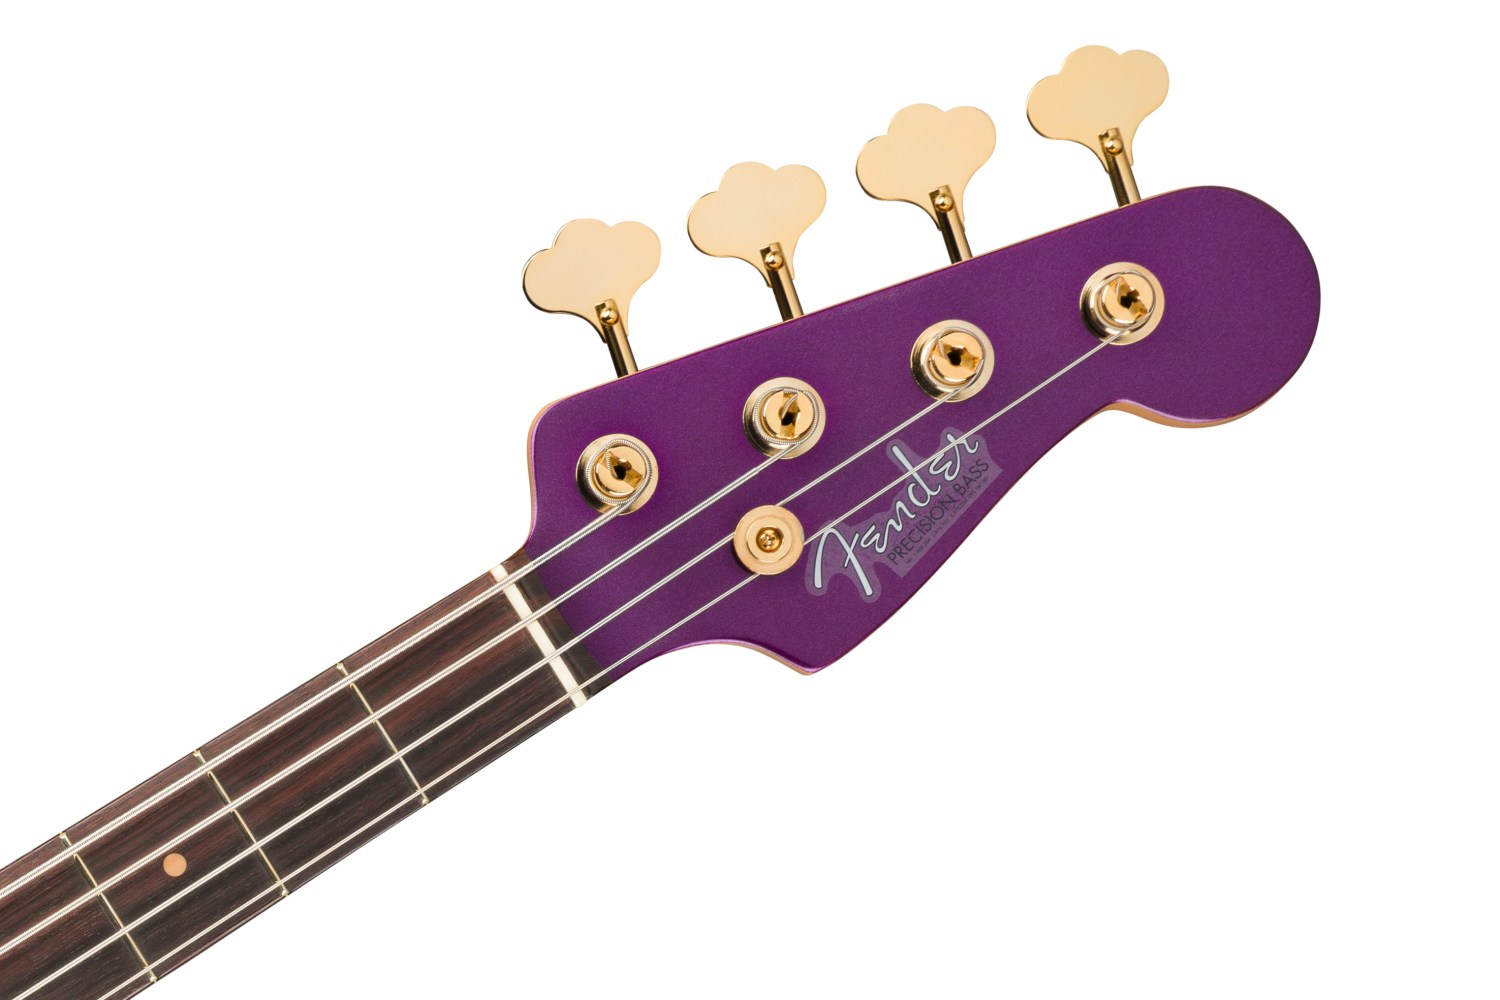 Fender Limited Edition Midnight Hour Precision Bass Headstock